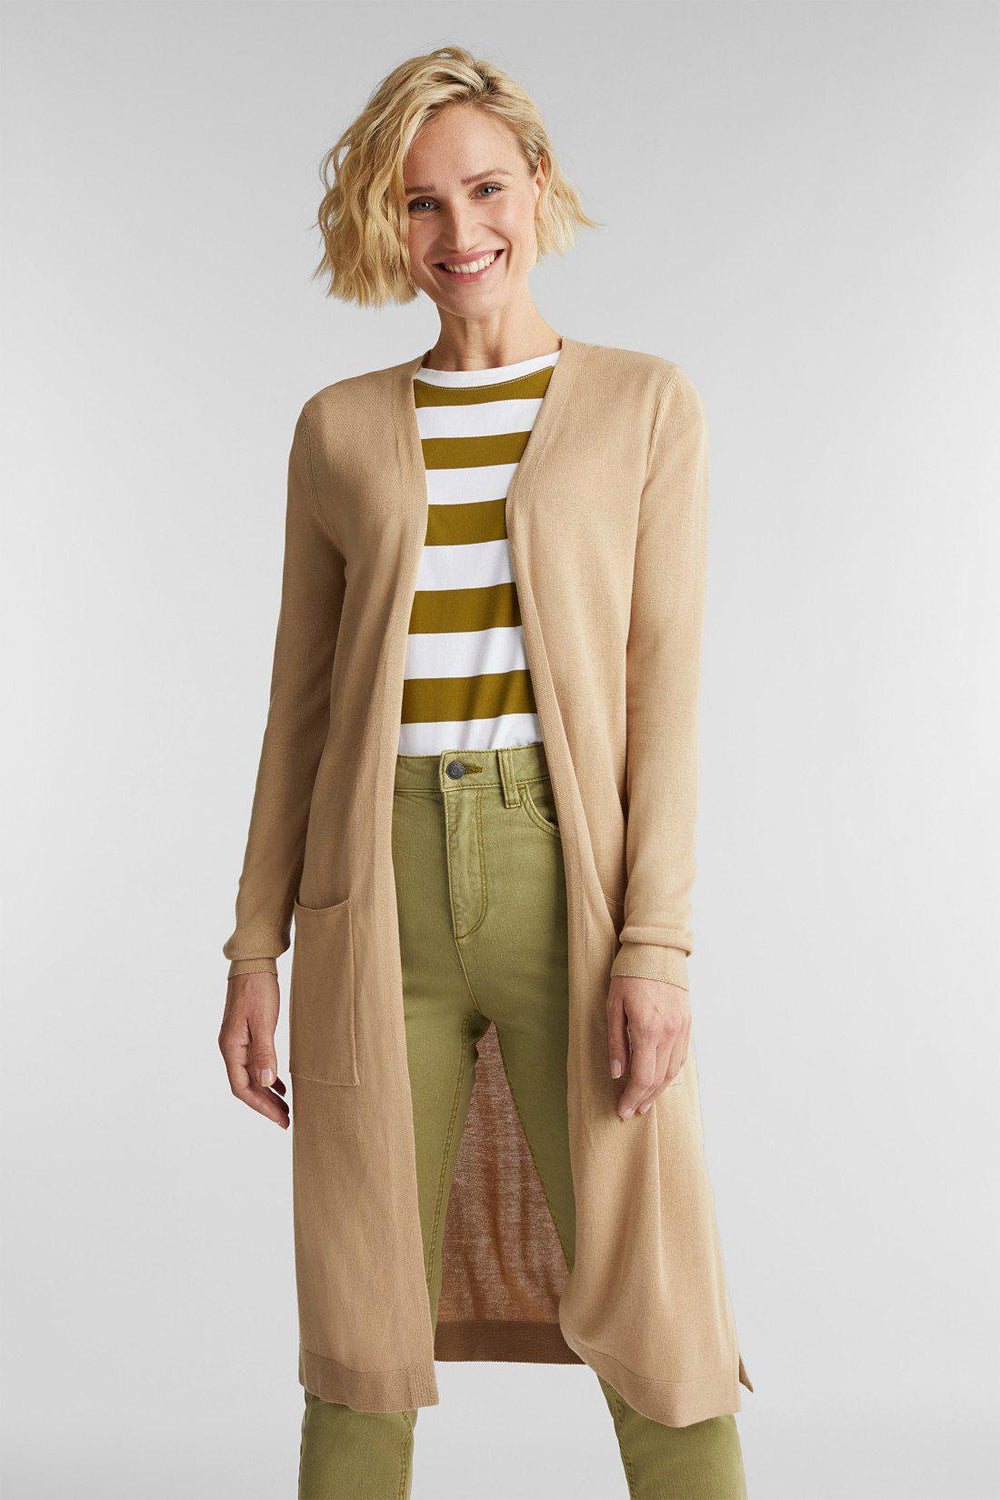 Esprit Light Sweater Cardigan in Beige-The Trendy Walrus